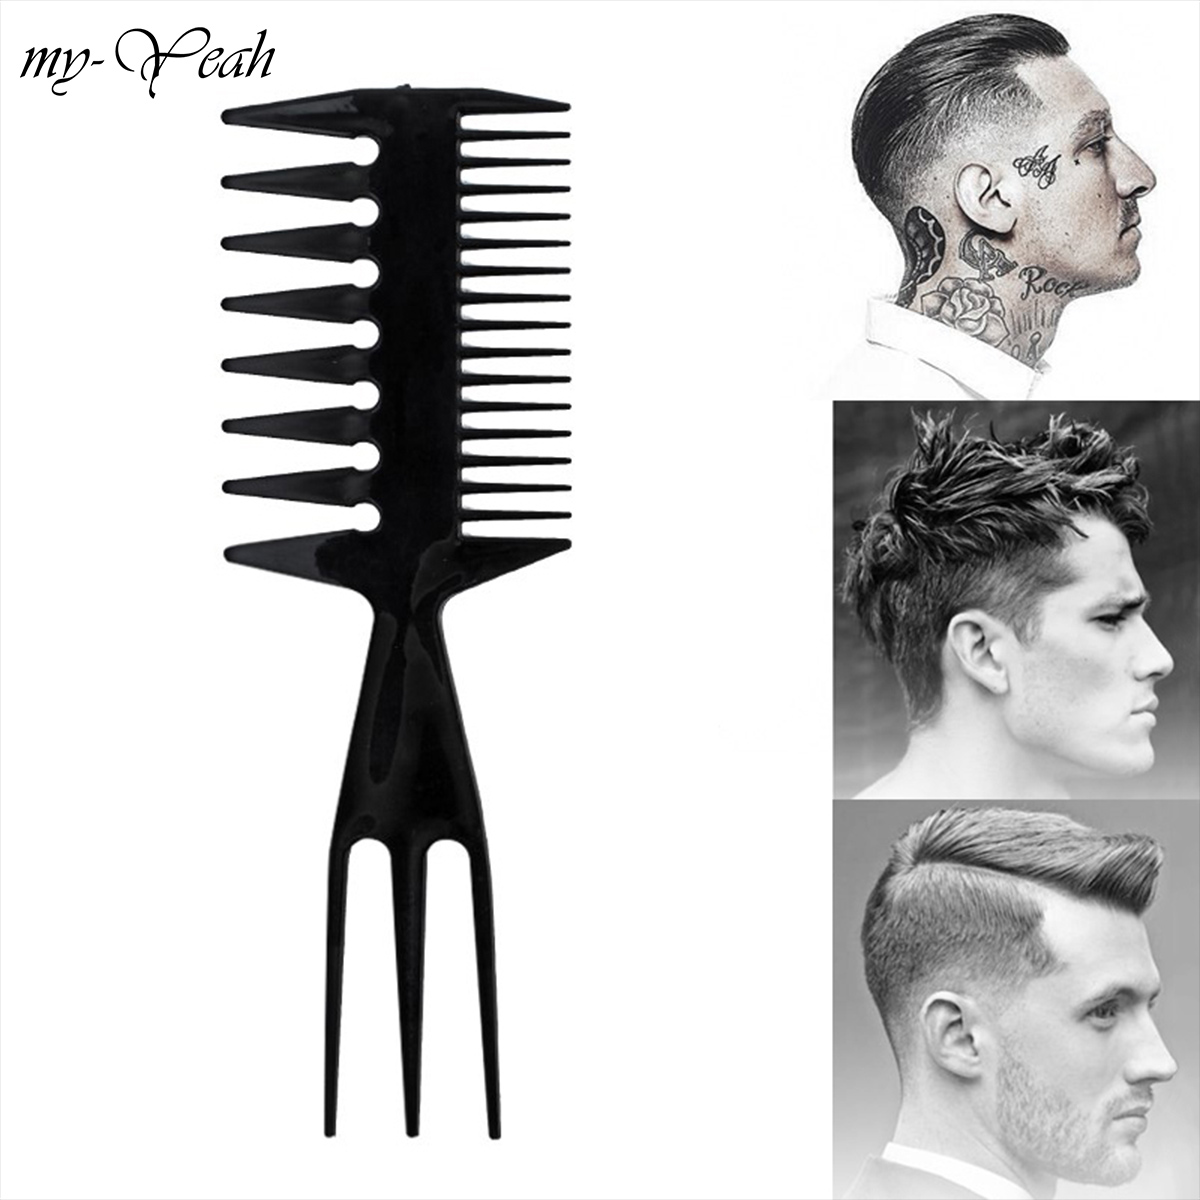 Pro Salon Double Side Tooth Combs Barber Hair Dyeing Cutting Fish Bone Shape Comb Coloring Tint Brush Home Use DIY Styling Tools wire